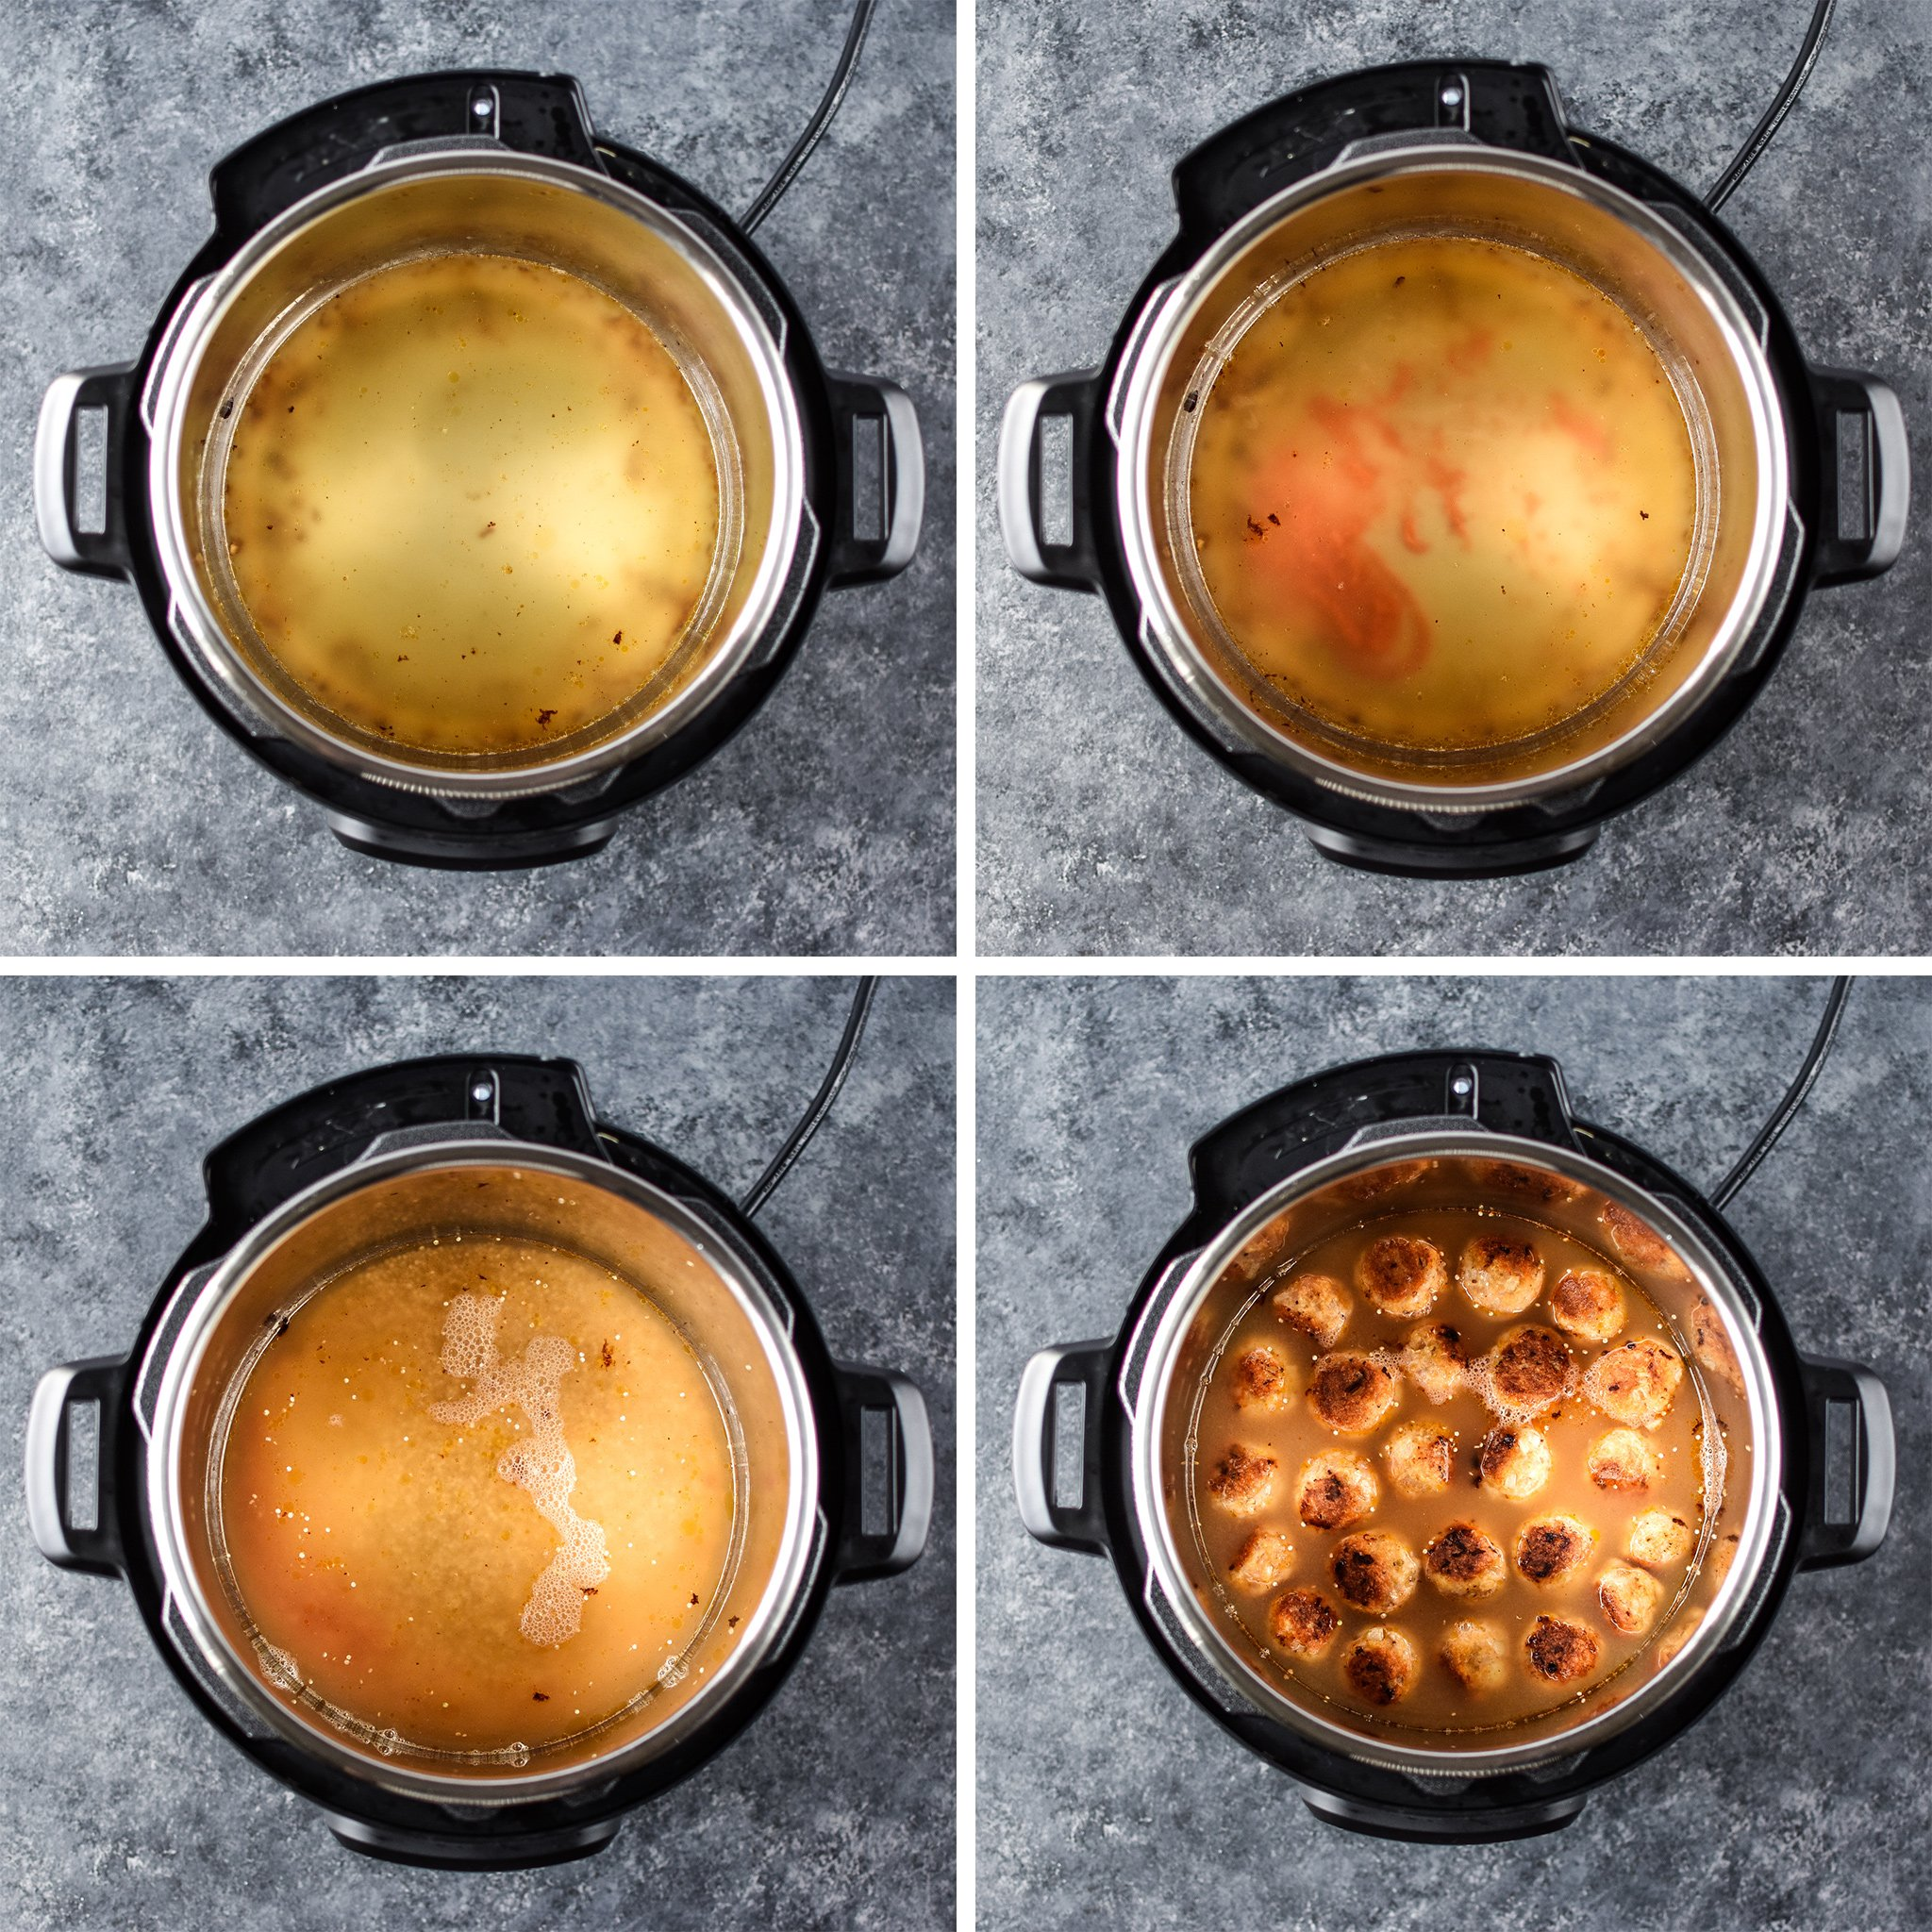 Four images of the Instant Pot from above, adding chicken broth, buffalo sauce, quinoa and browned meatballs.